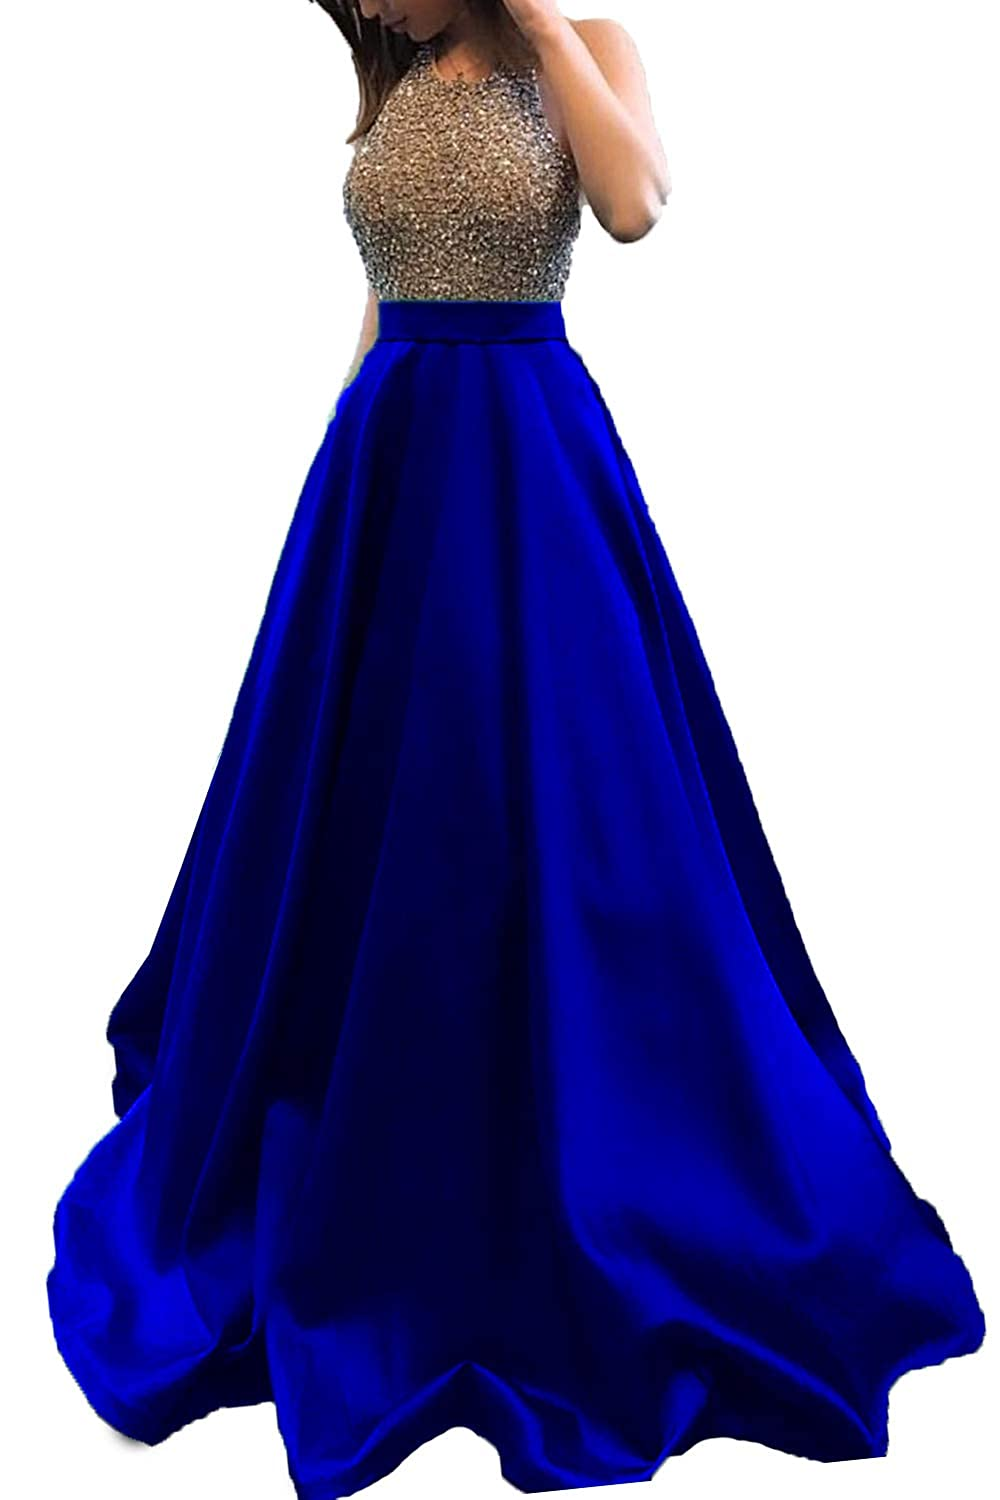 Royal bluee Promworld Women's Rhinestone Halter Neck A line Prom Dress Satin Formal Gown Evening Party Dress